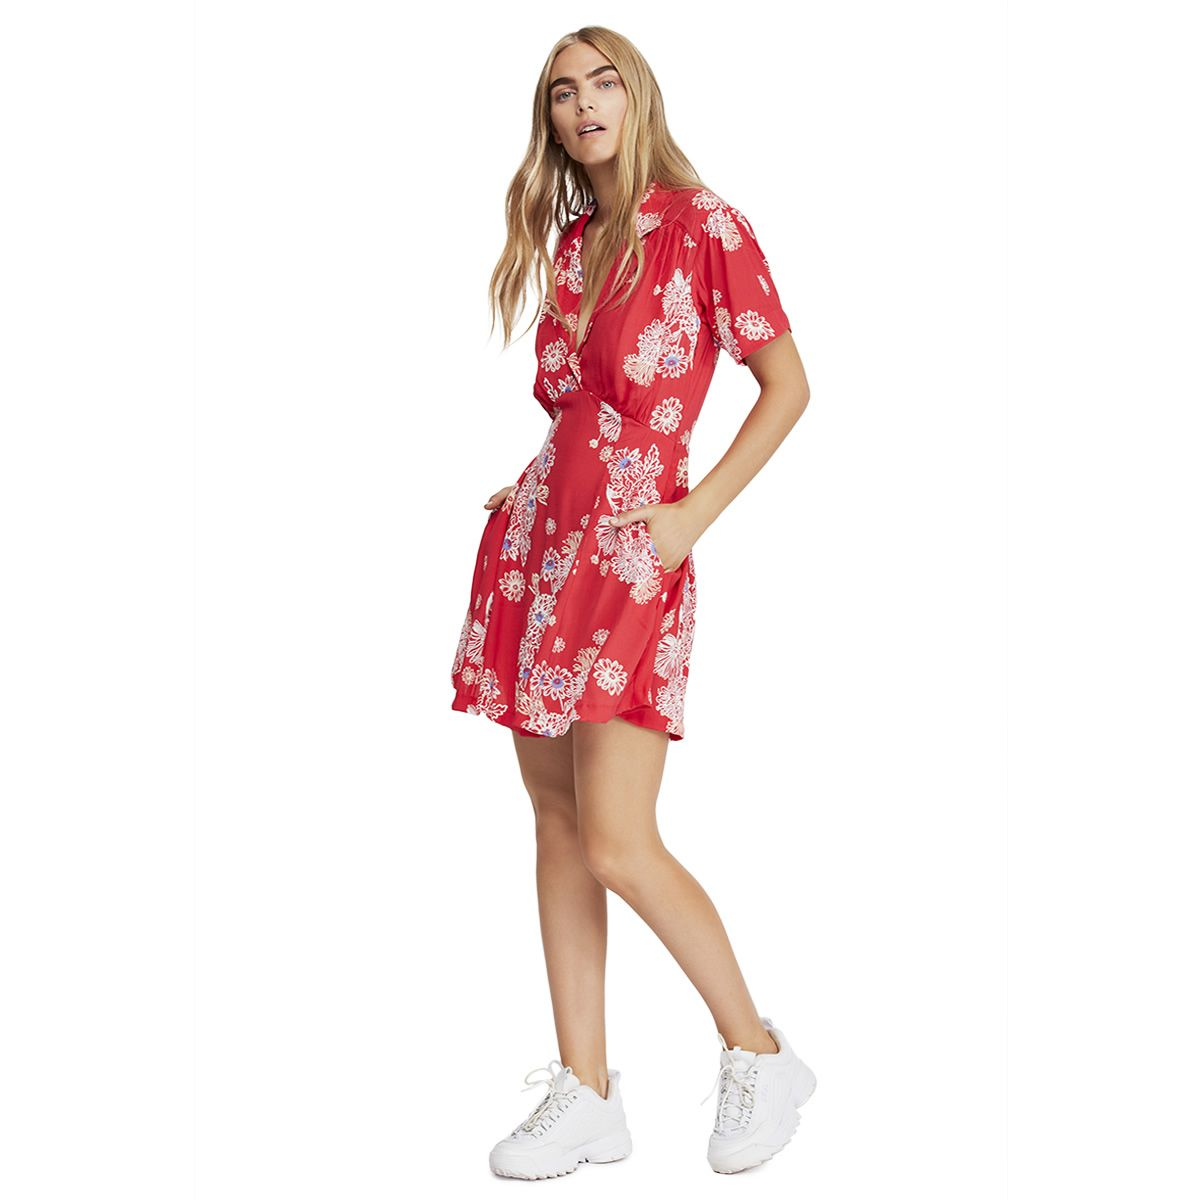 70ffaf07f34 Free People Clothing - Womens Apparel - Macy s